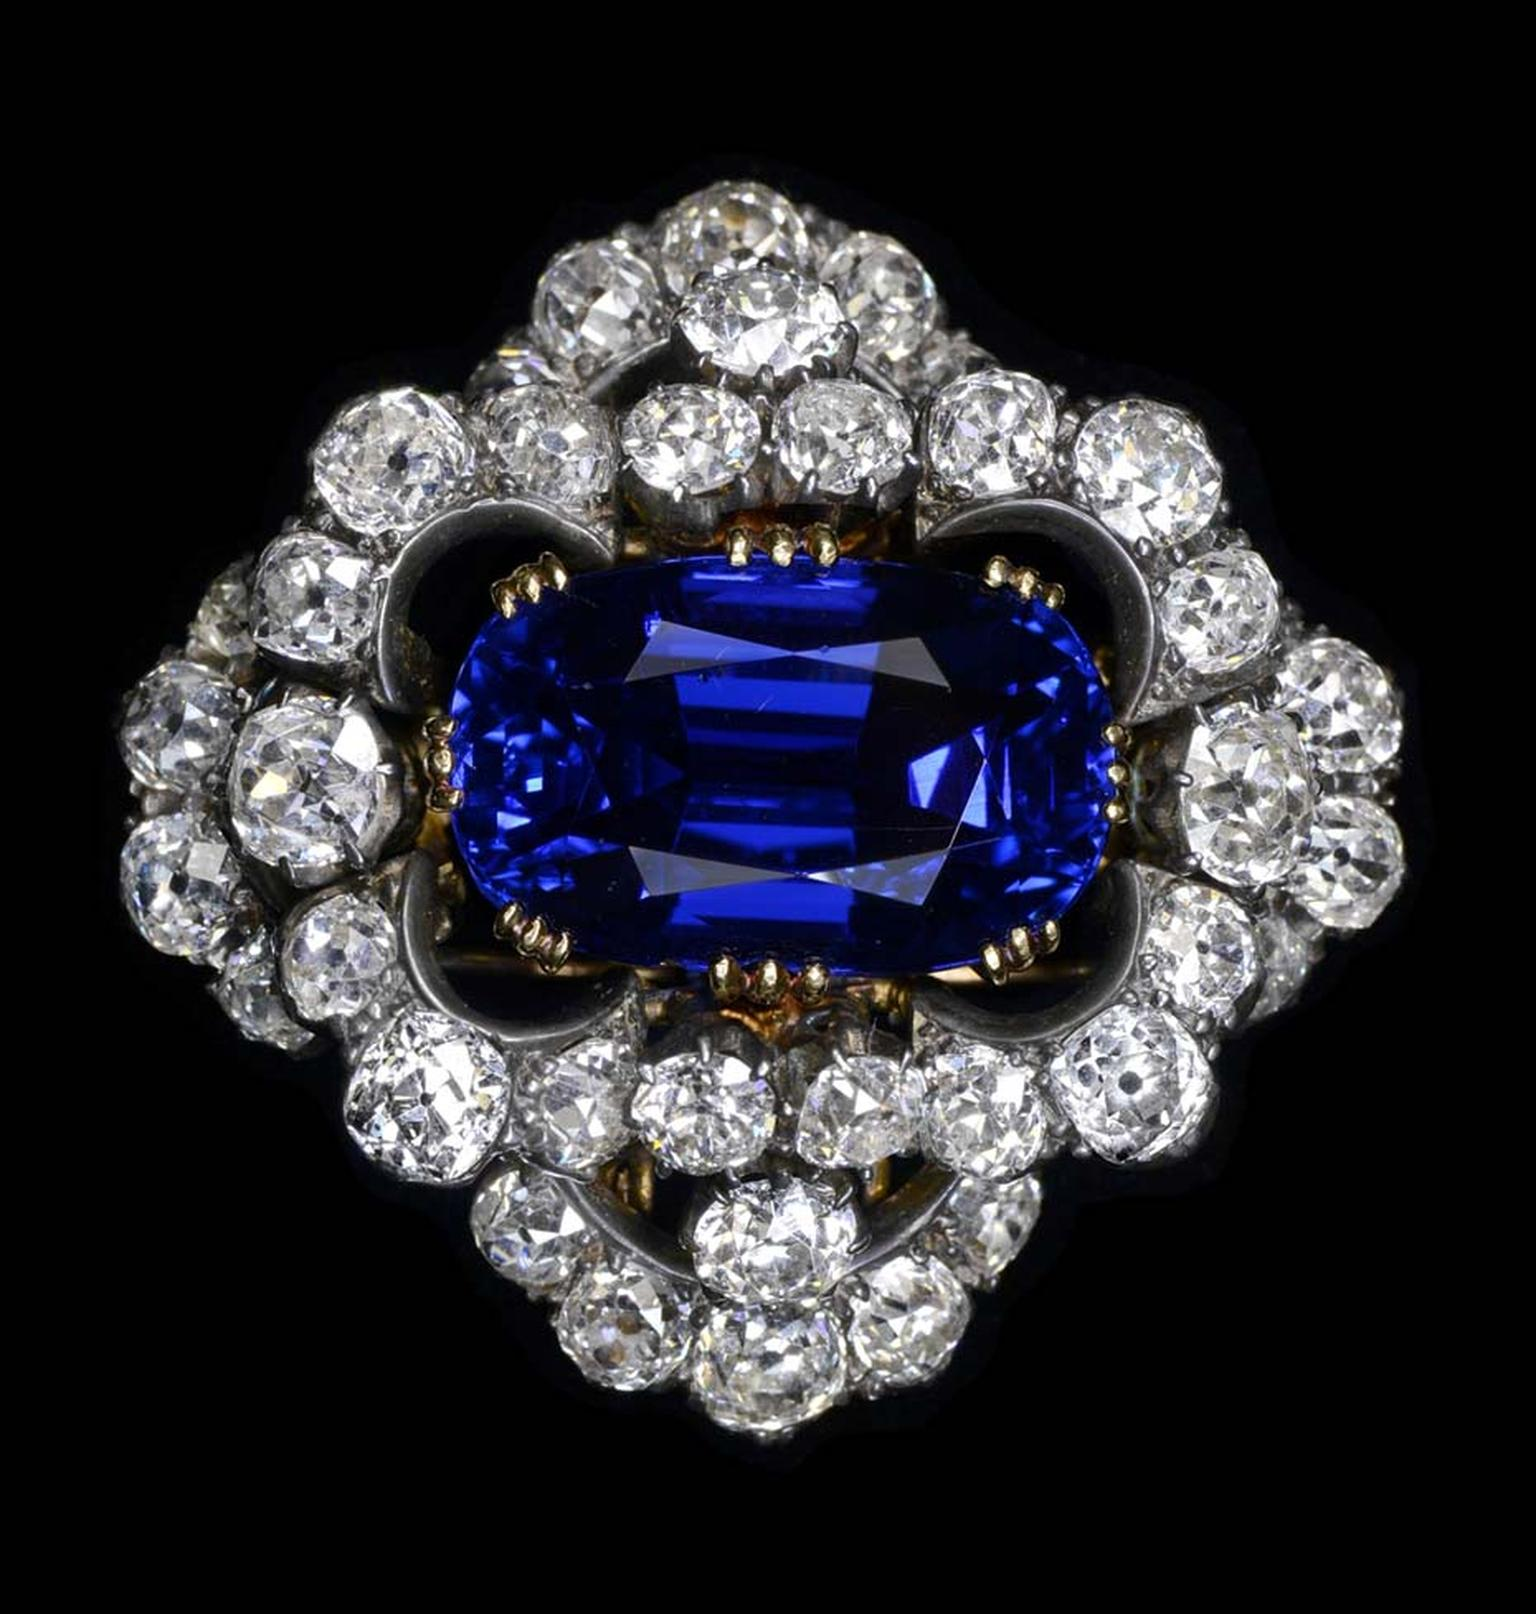 Dehres from Hong Kong is bringing this magnificent non-heated 37.29 carat Burmese sapphire brooch, given to Elizabeth Taylor by her husband Richard Burton, to Fine Art Asia 2014.